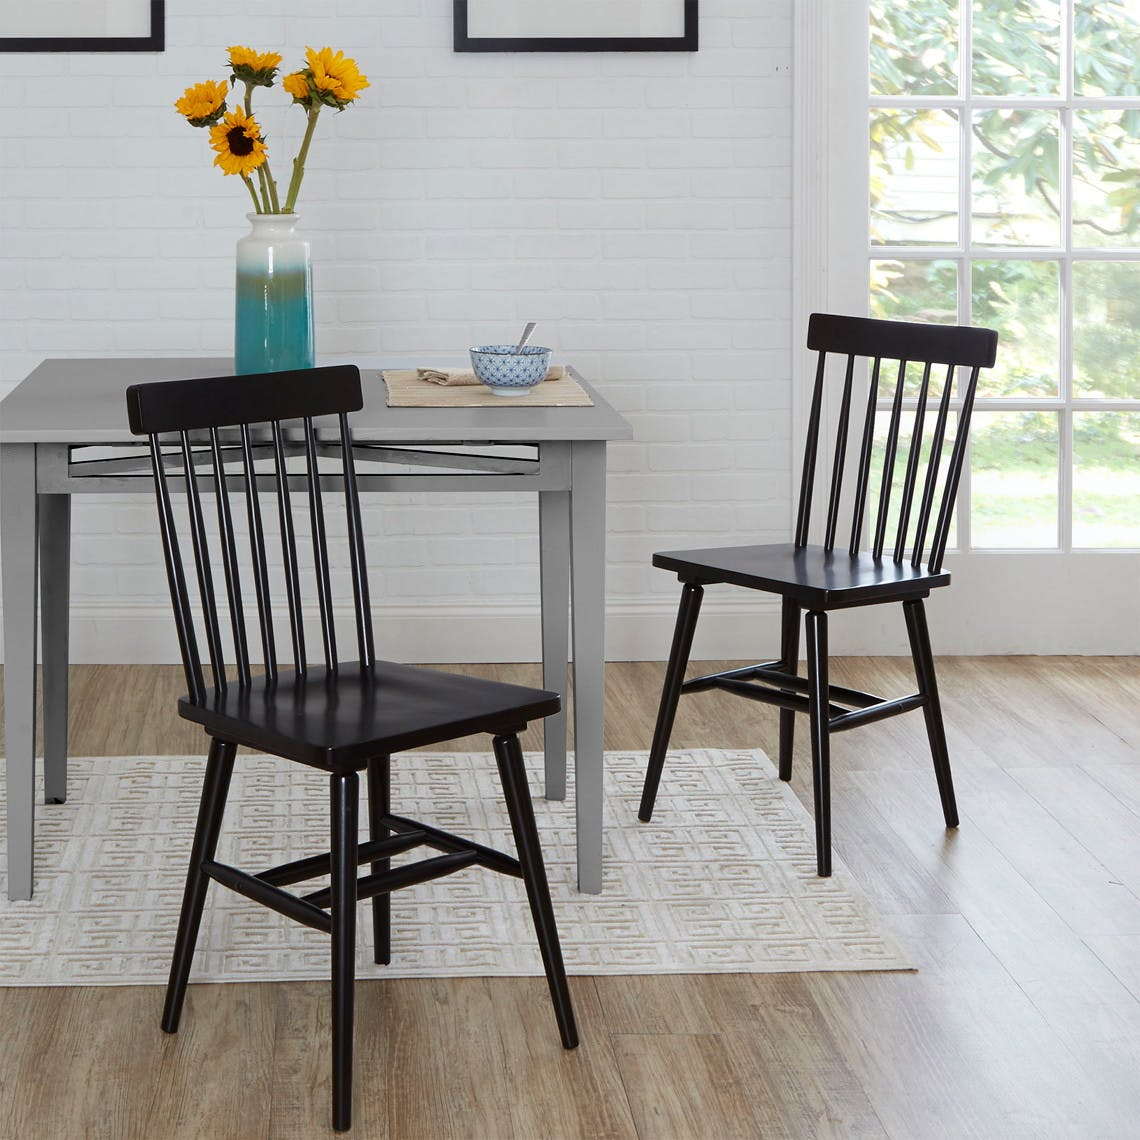 Better Homes Gardens Dining Chairs As Low As 23 Each At Walmart The Krazy Coupon Lady